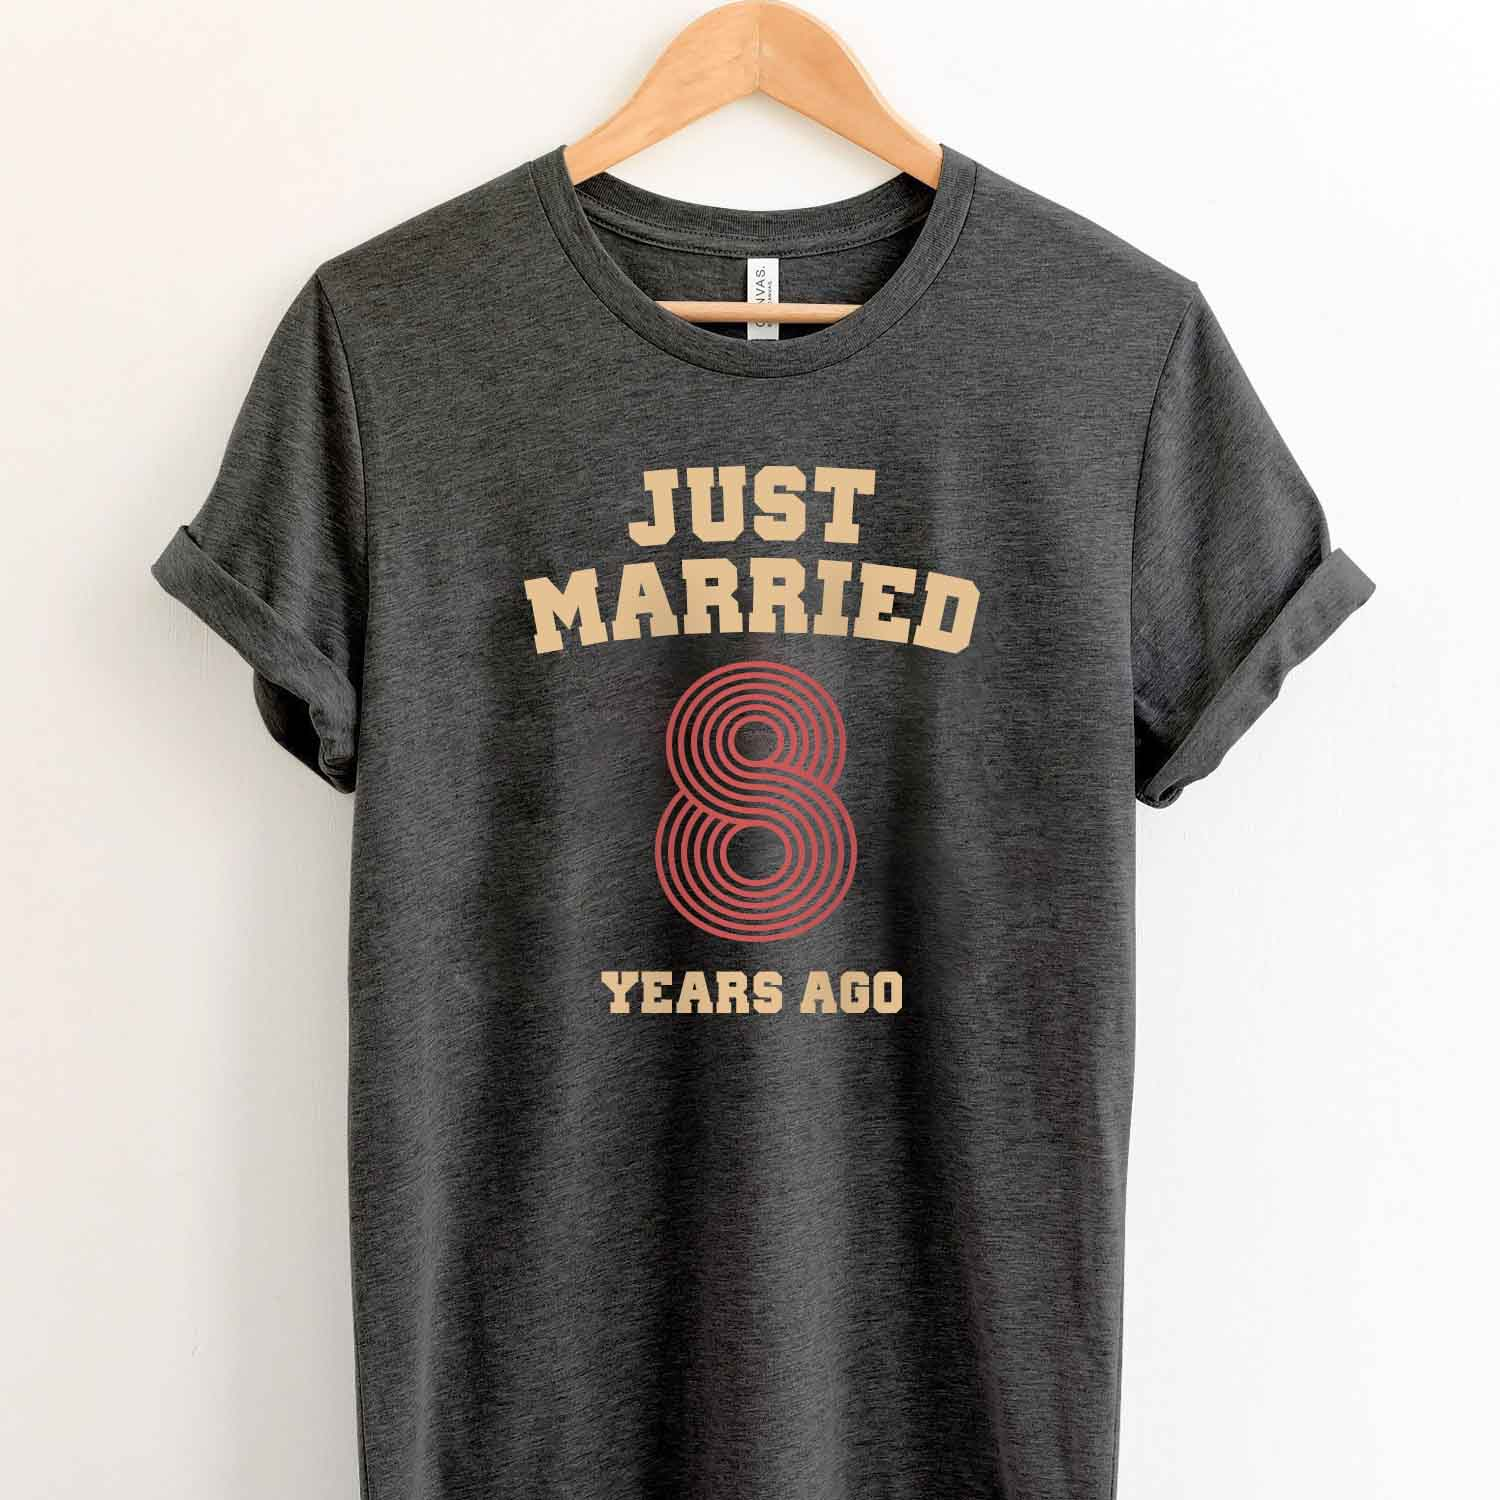 Just Married 8 Years Ago 2011 T Shirt Perfect Sweet Romantic Gift for Couple Husband Wife